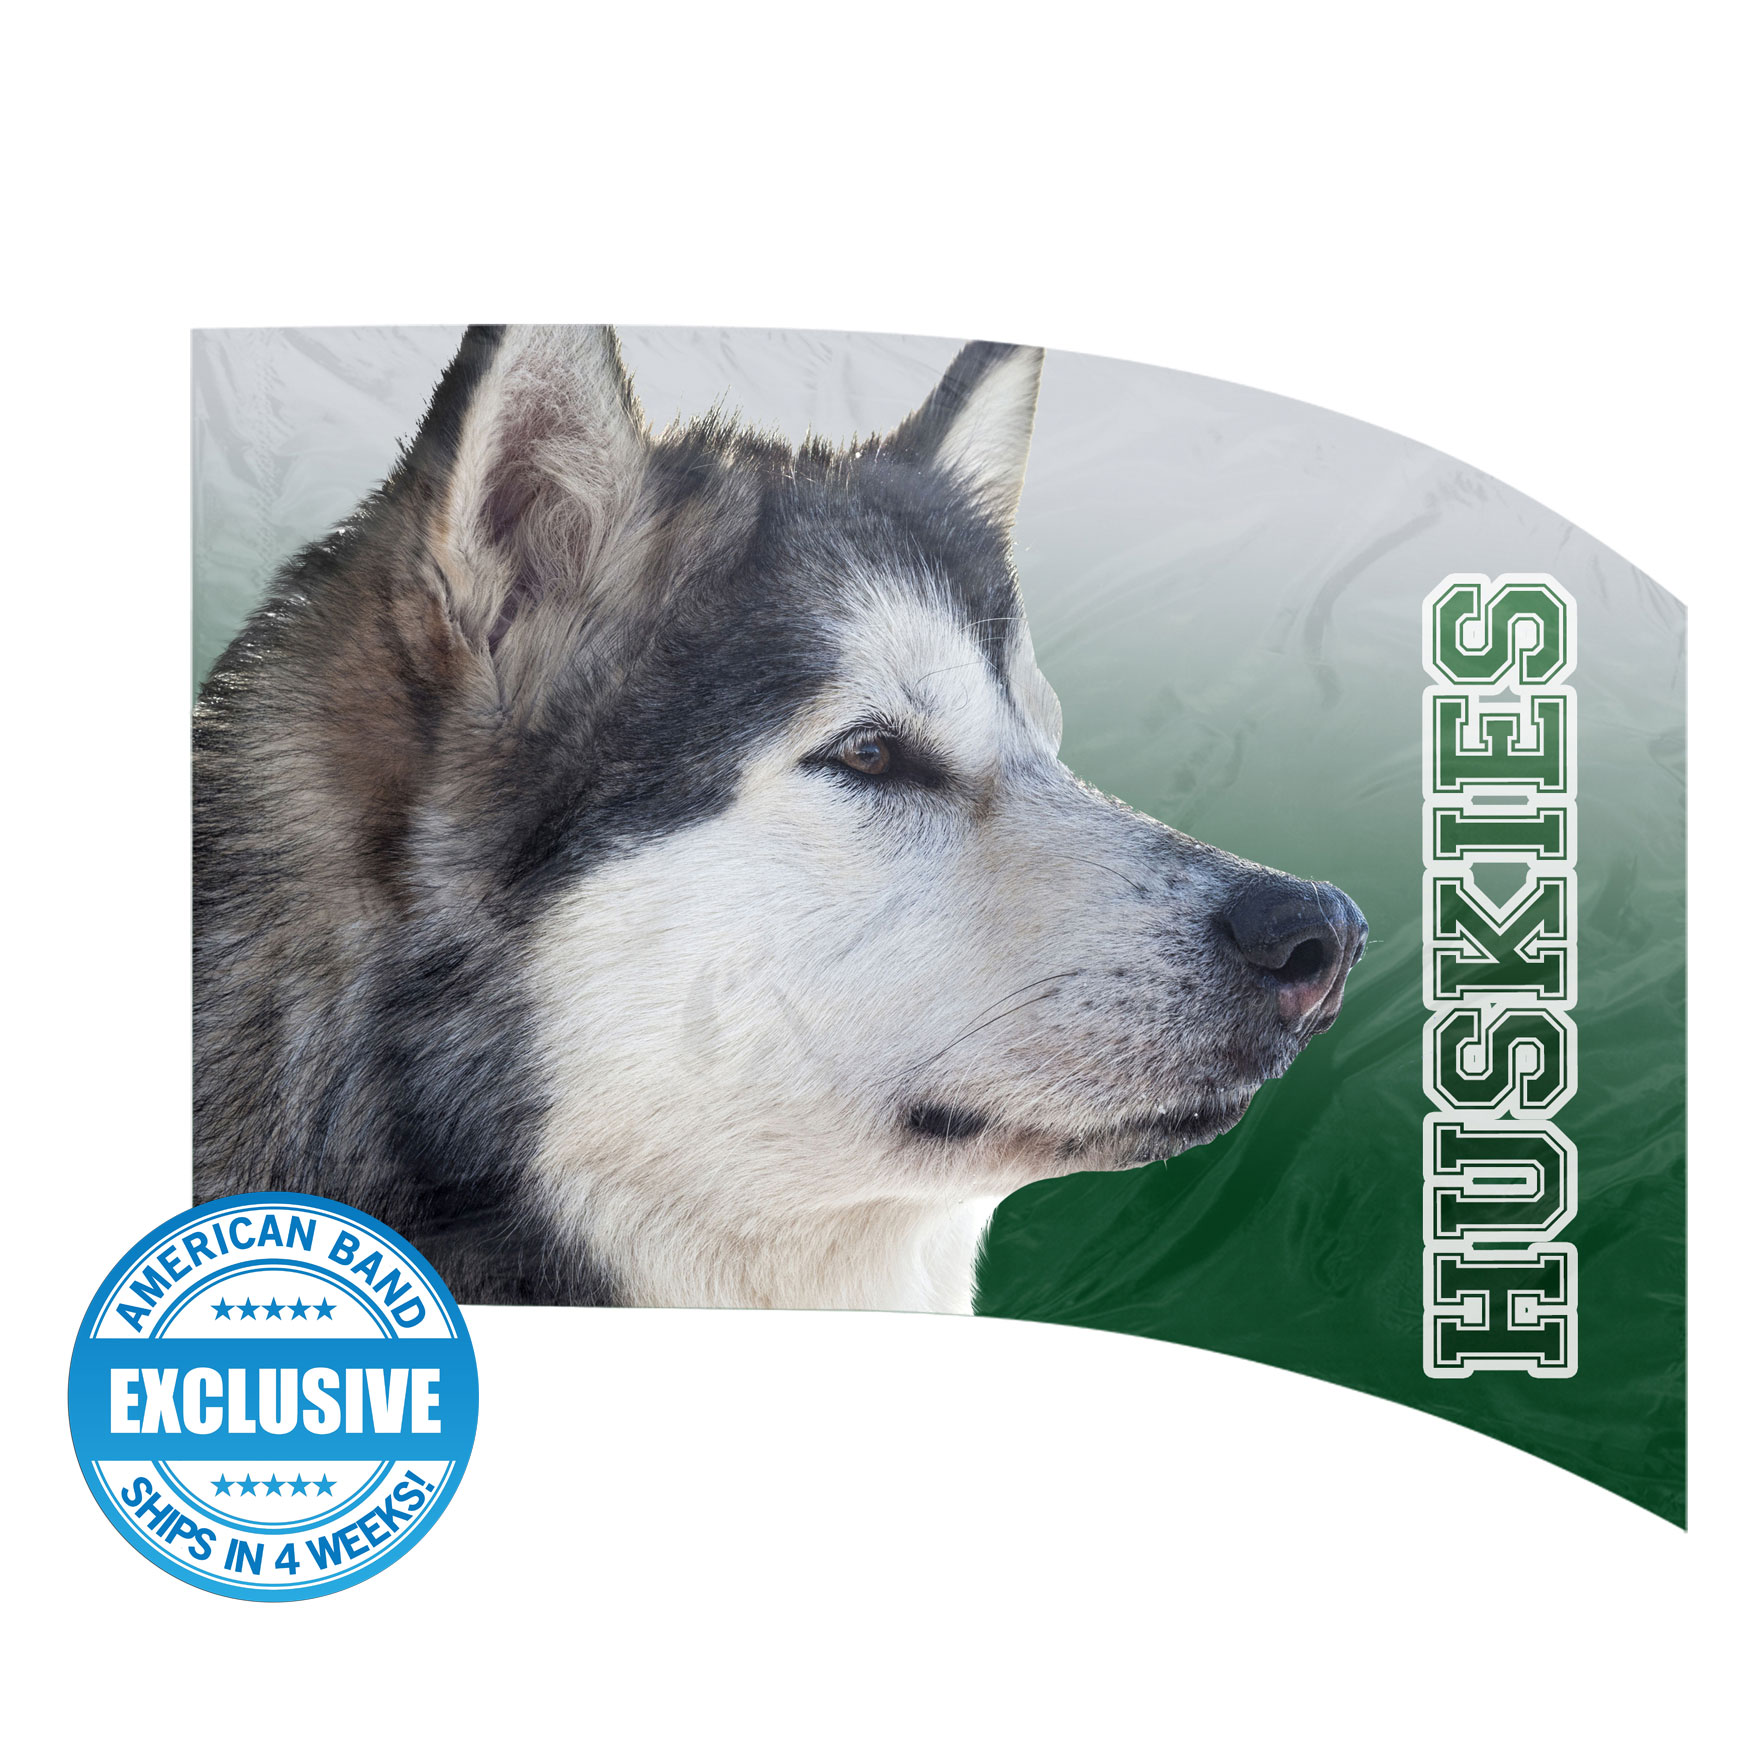 Made-to-Order Digital Mascot Flags - Husky